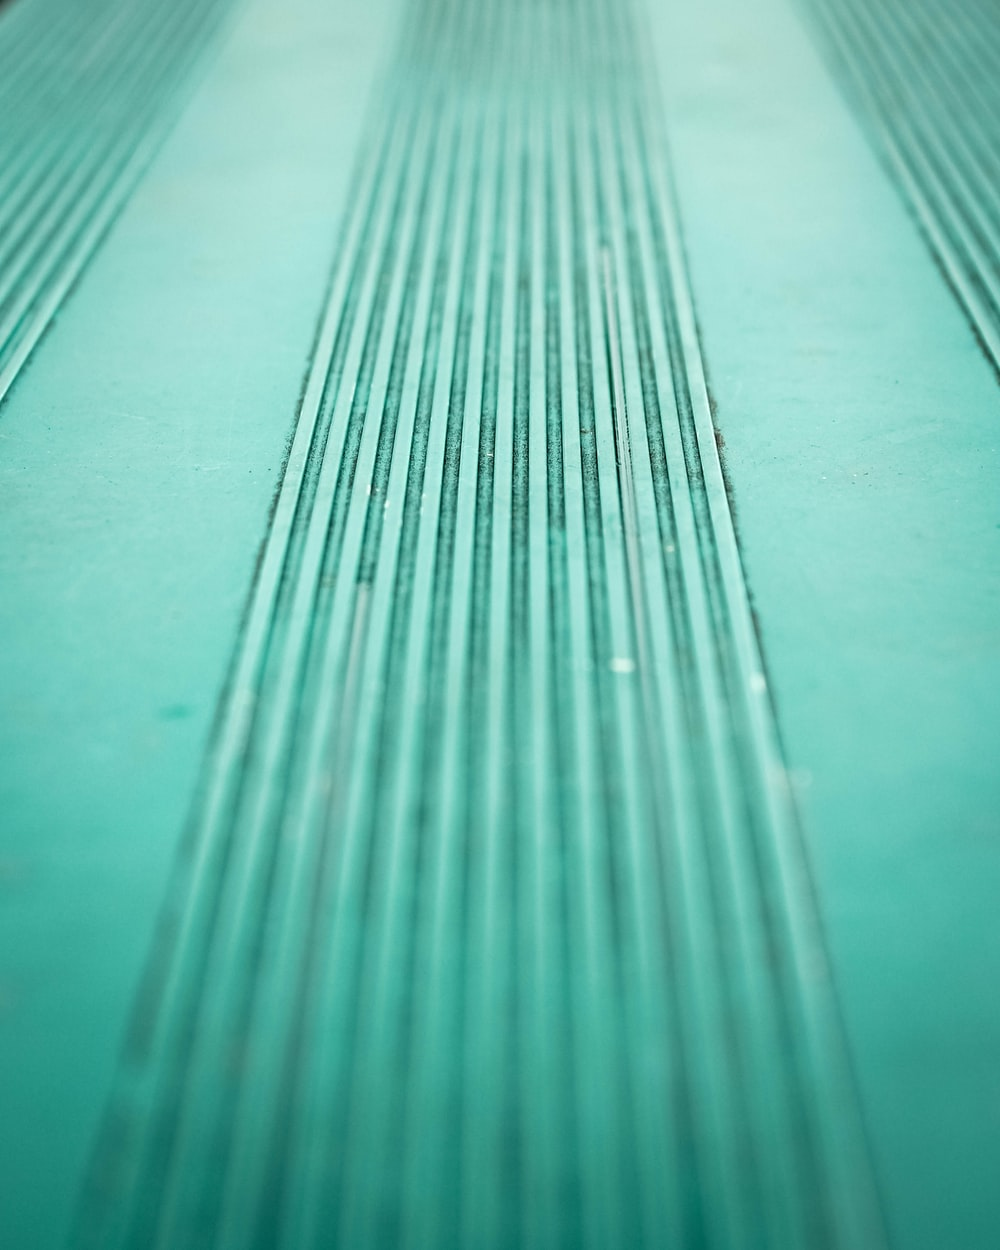 Vertical wallpaper pictures download free images on unsplash a bluish green line texture pattern voltagebd Choice Image